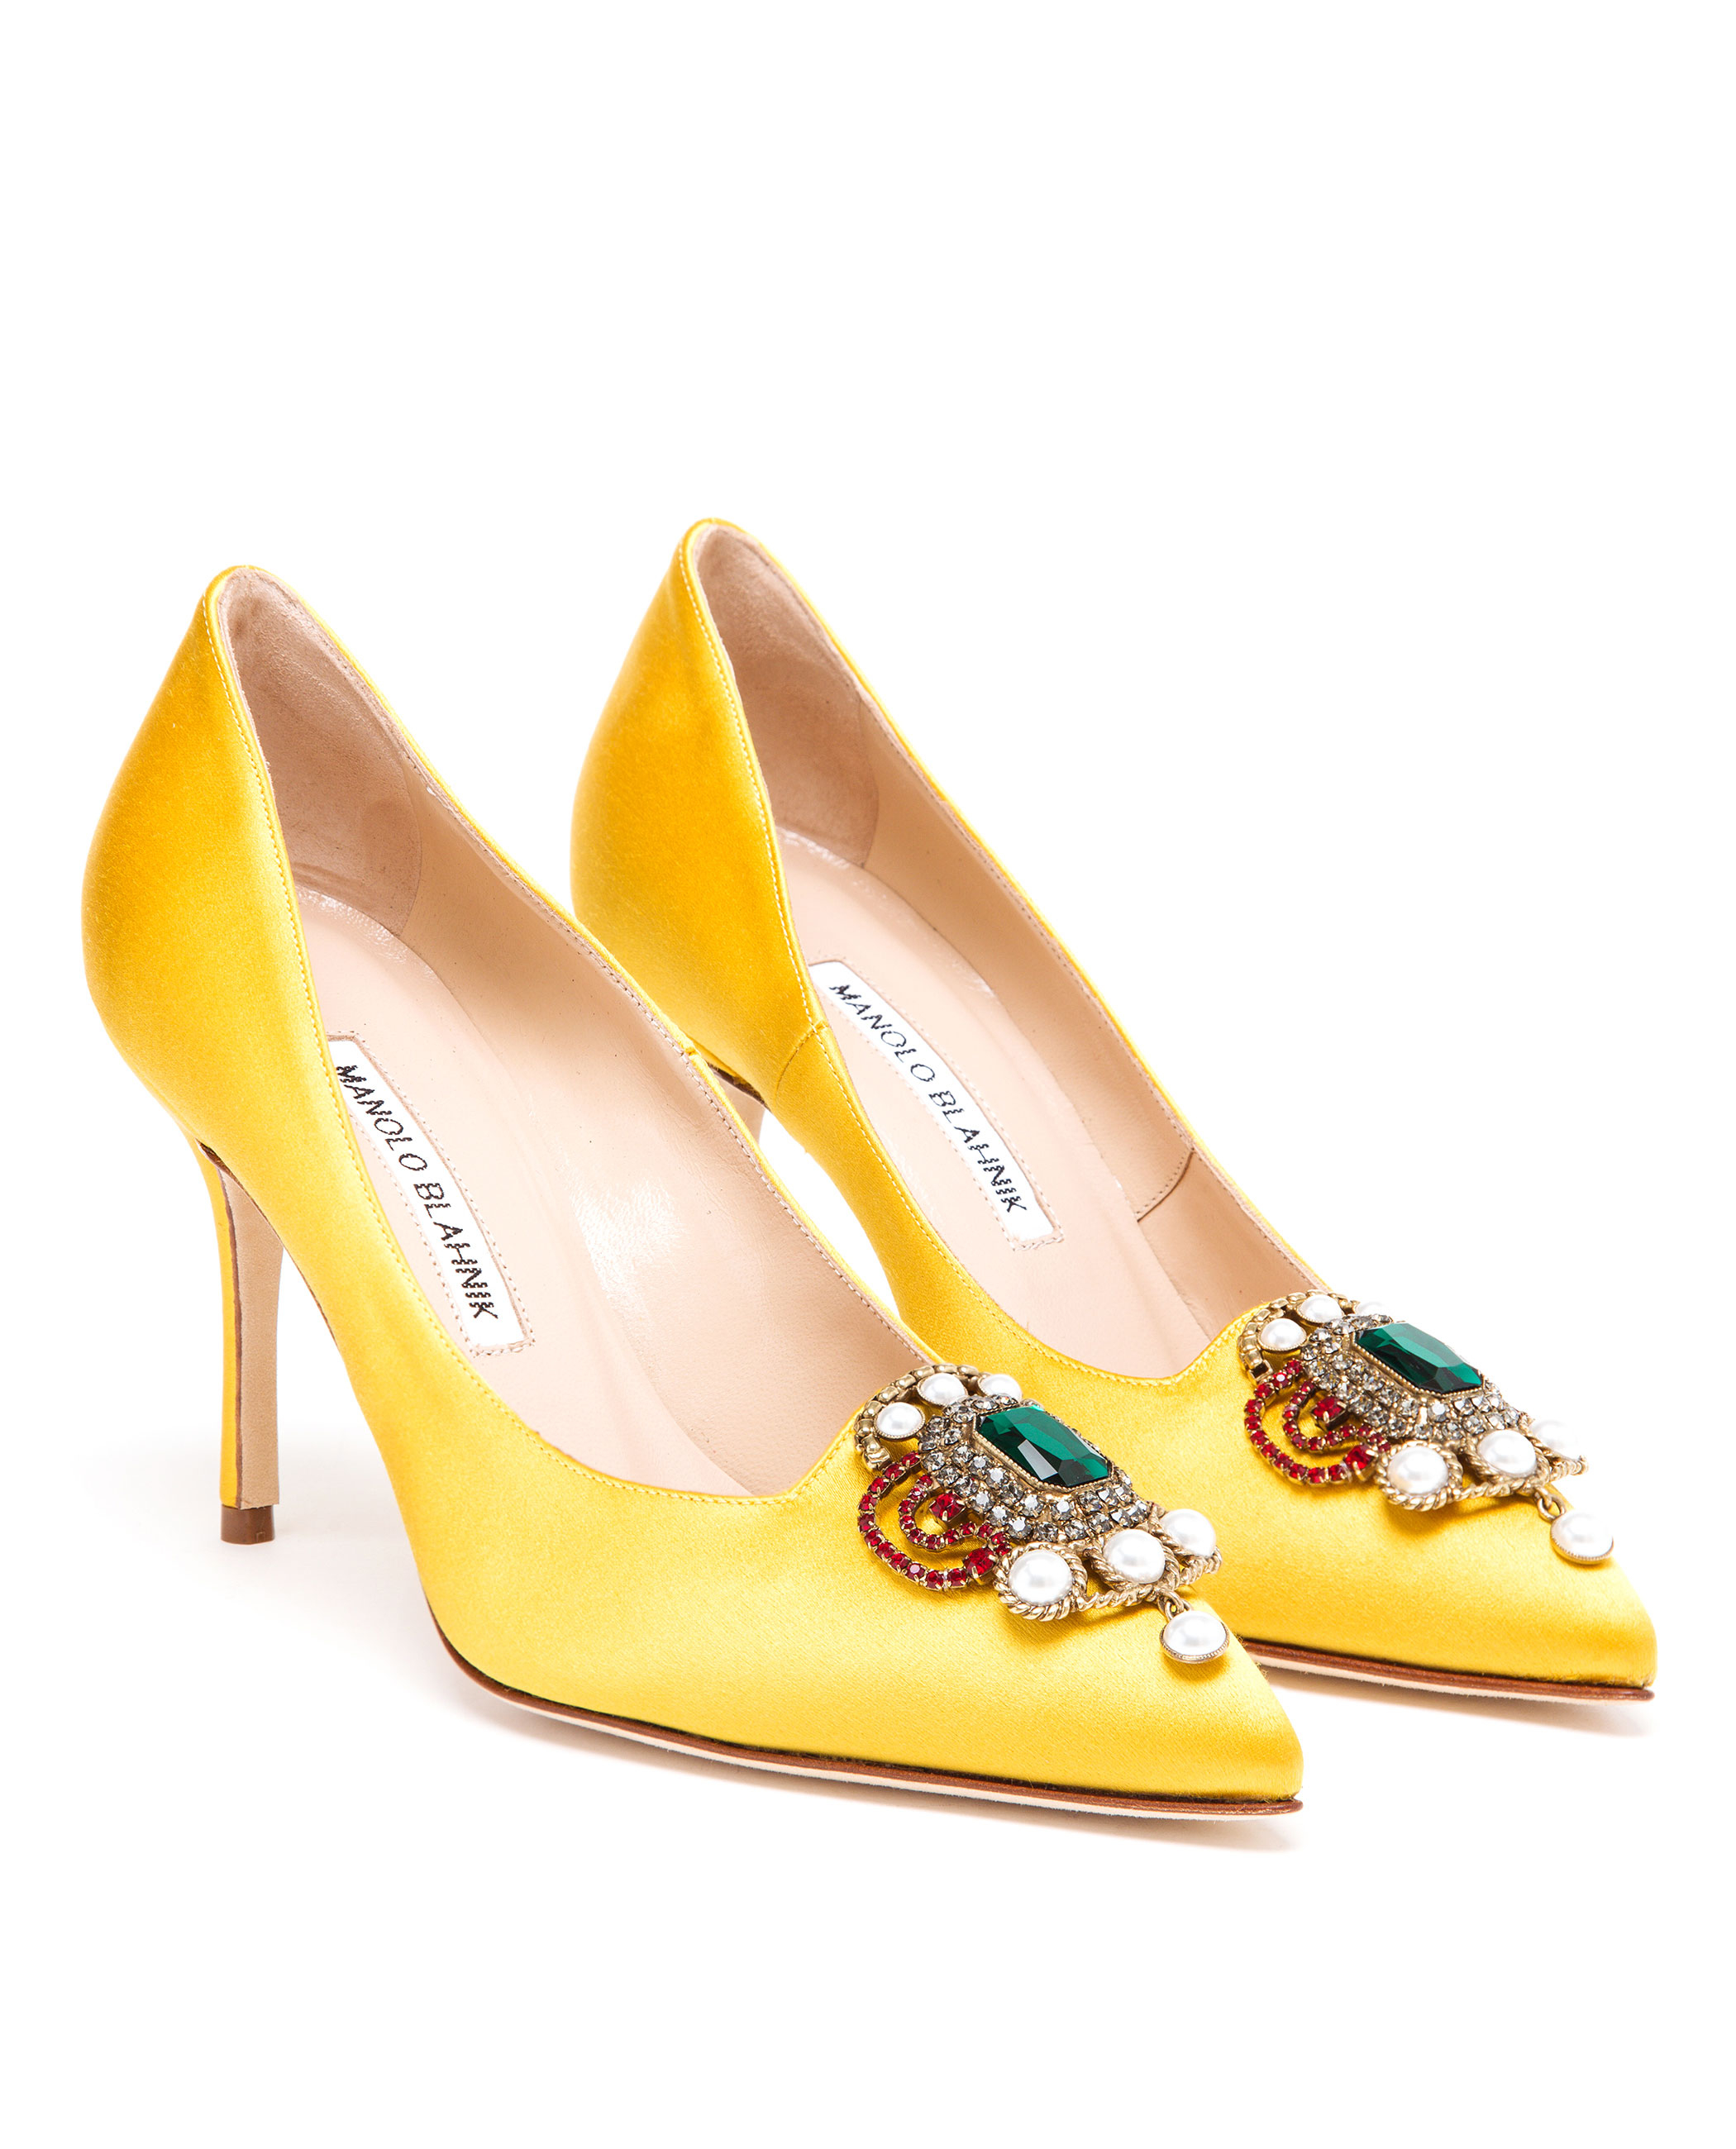 Lyst manolo blahnik eufrasia high heeled satin pumps in for Who is manolo blahnik